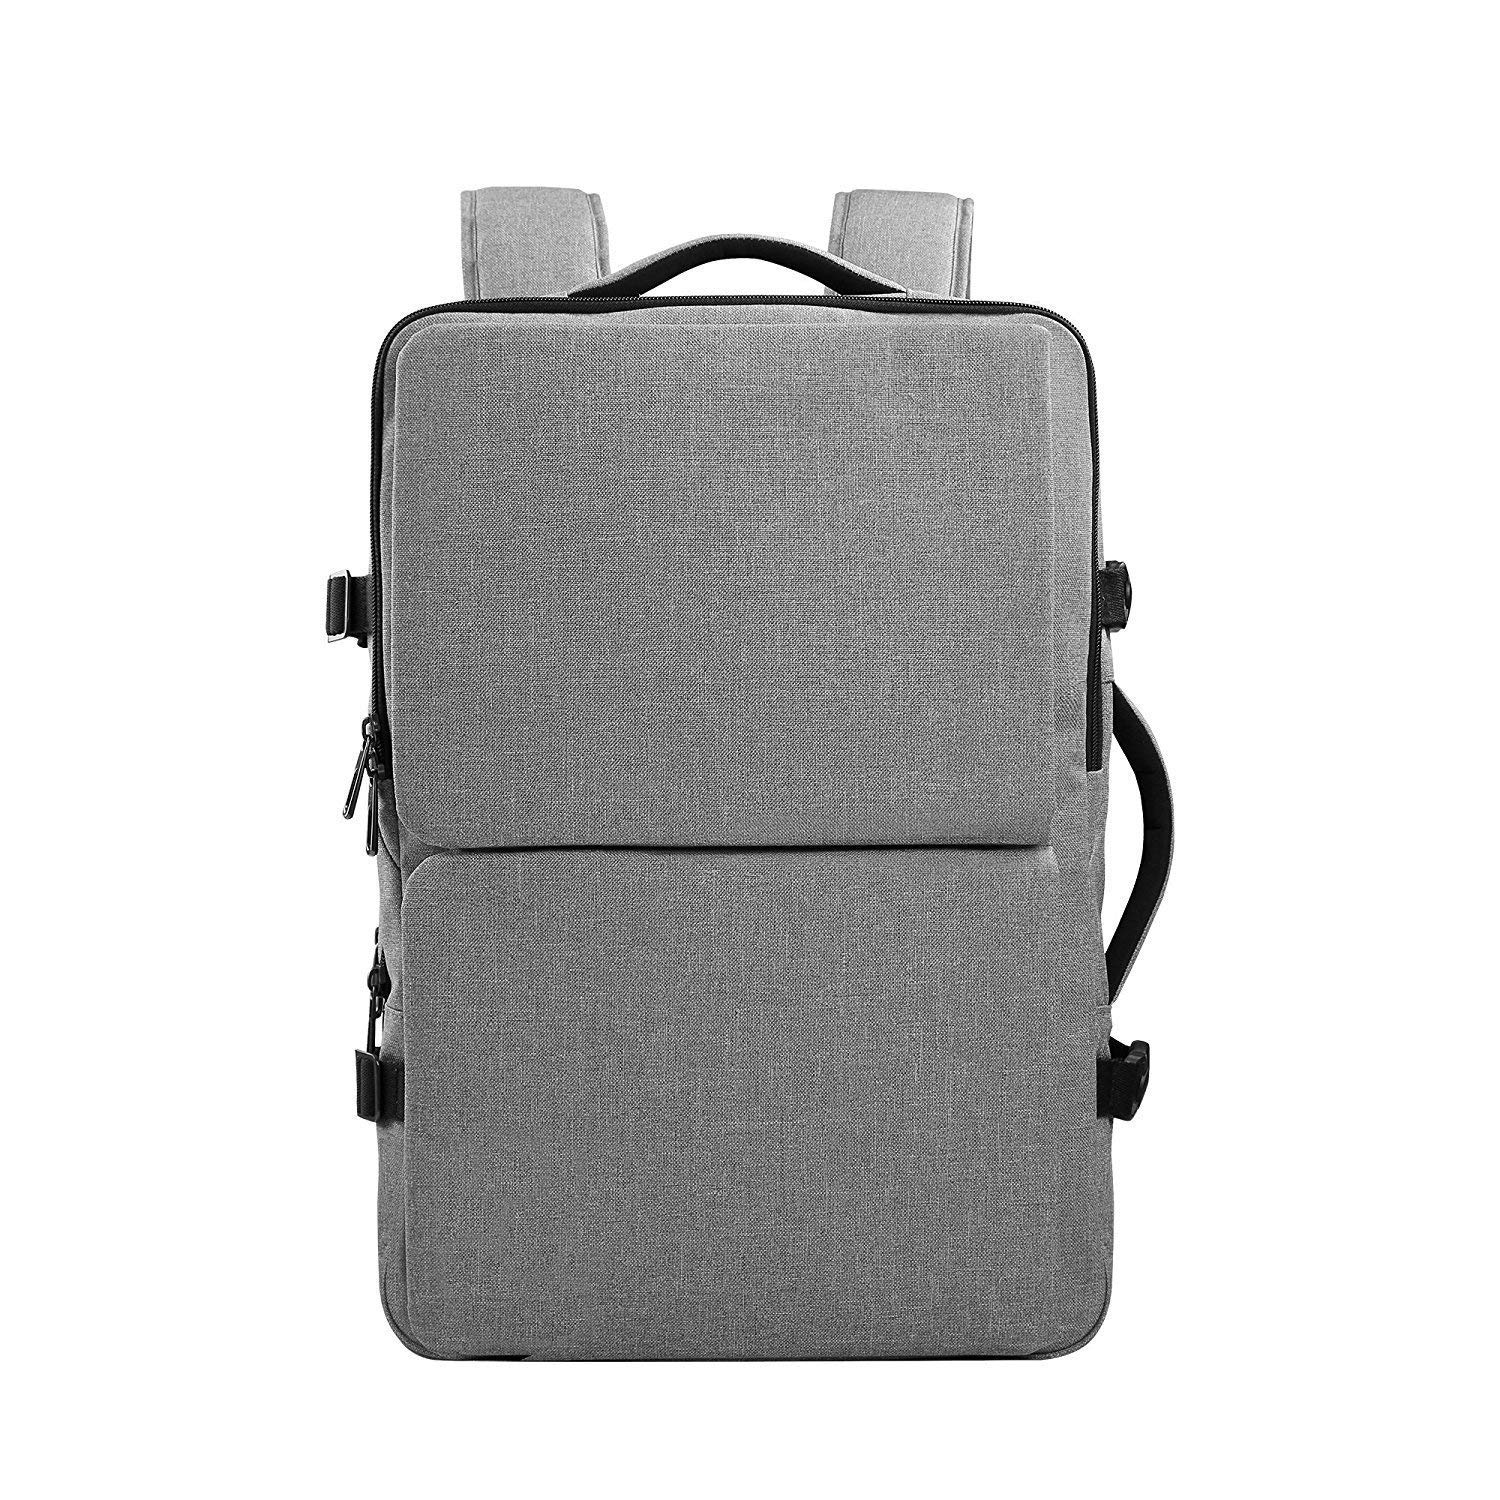 Cai Unisex College Bag, Large Travel Laptop Backpack 15 Inch 17 Inch Computer Water Resistant Rucksack 15, Light Grey